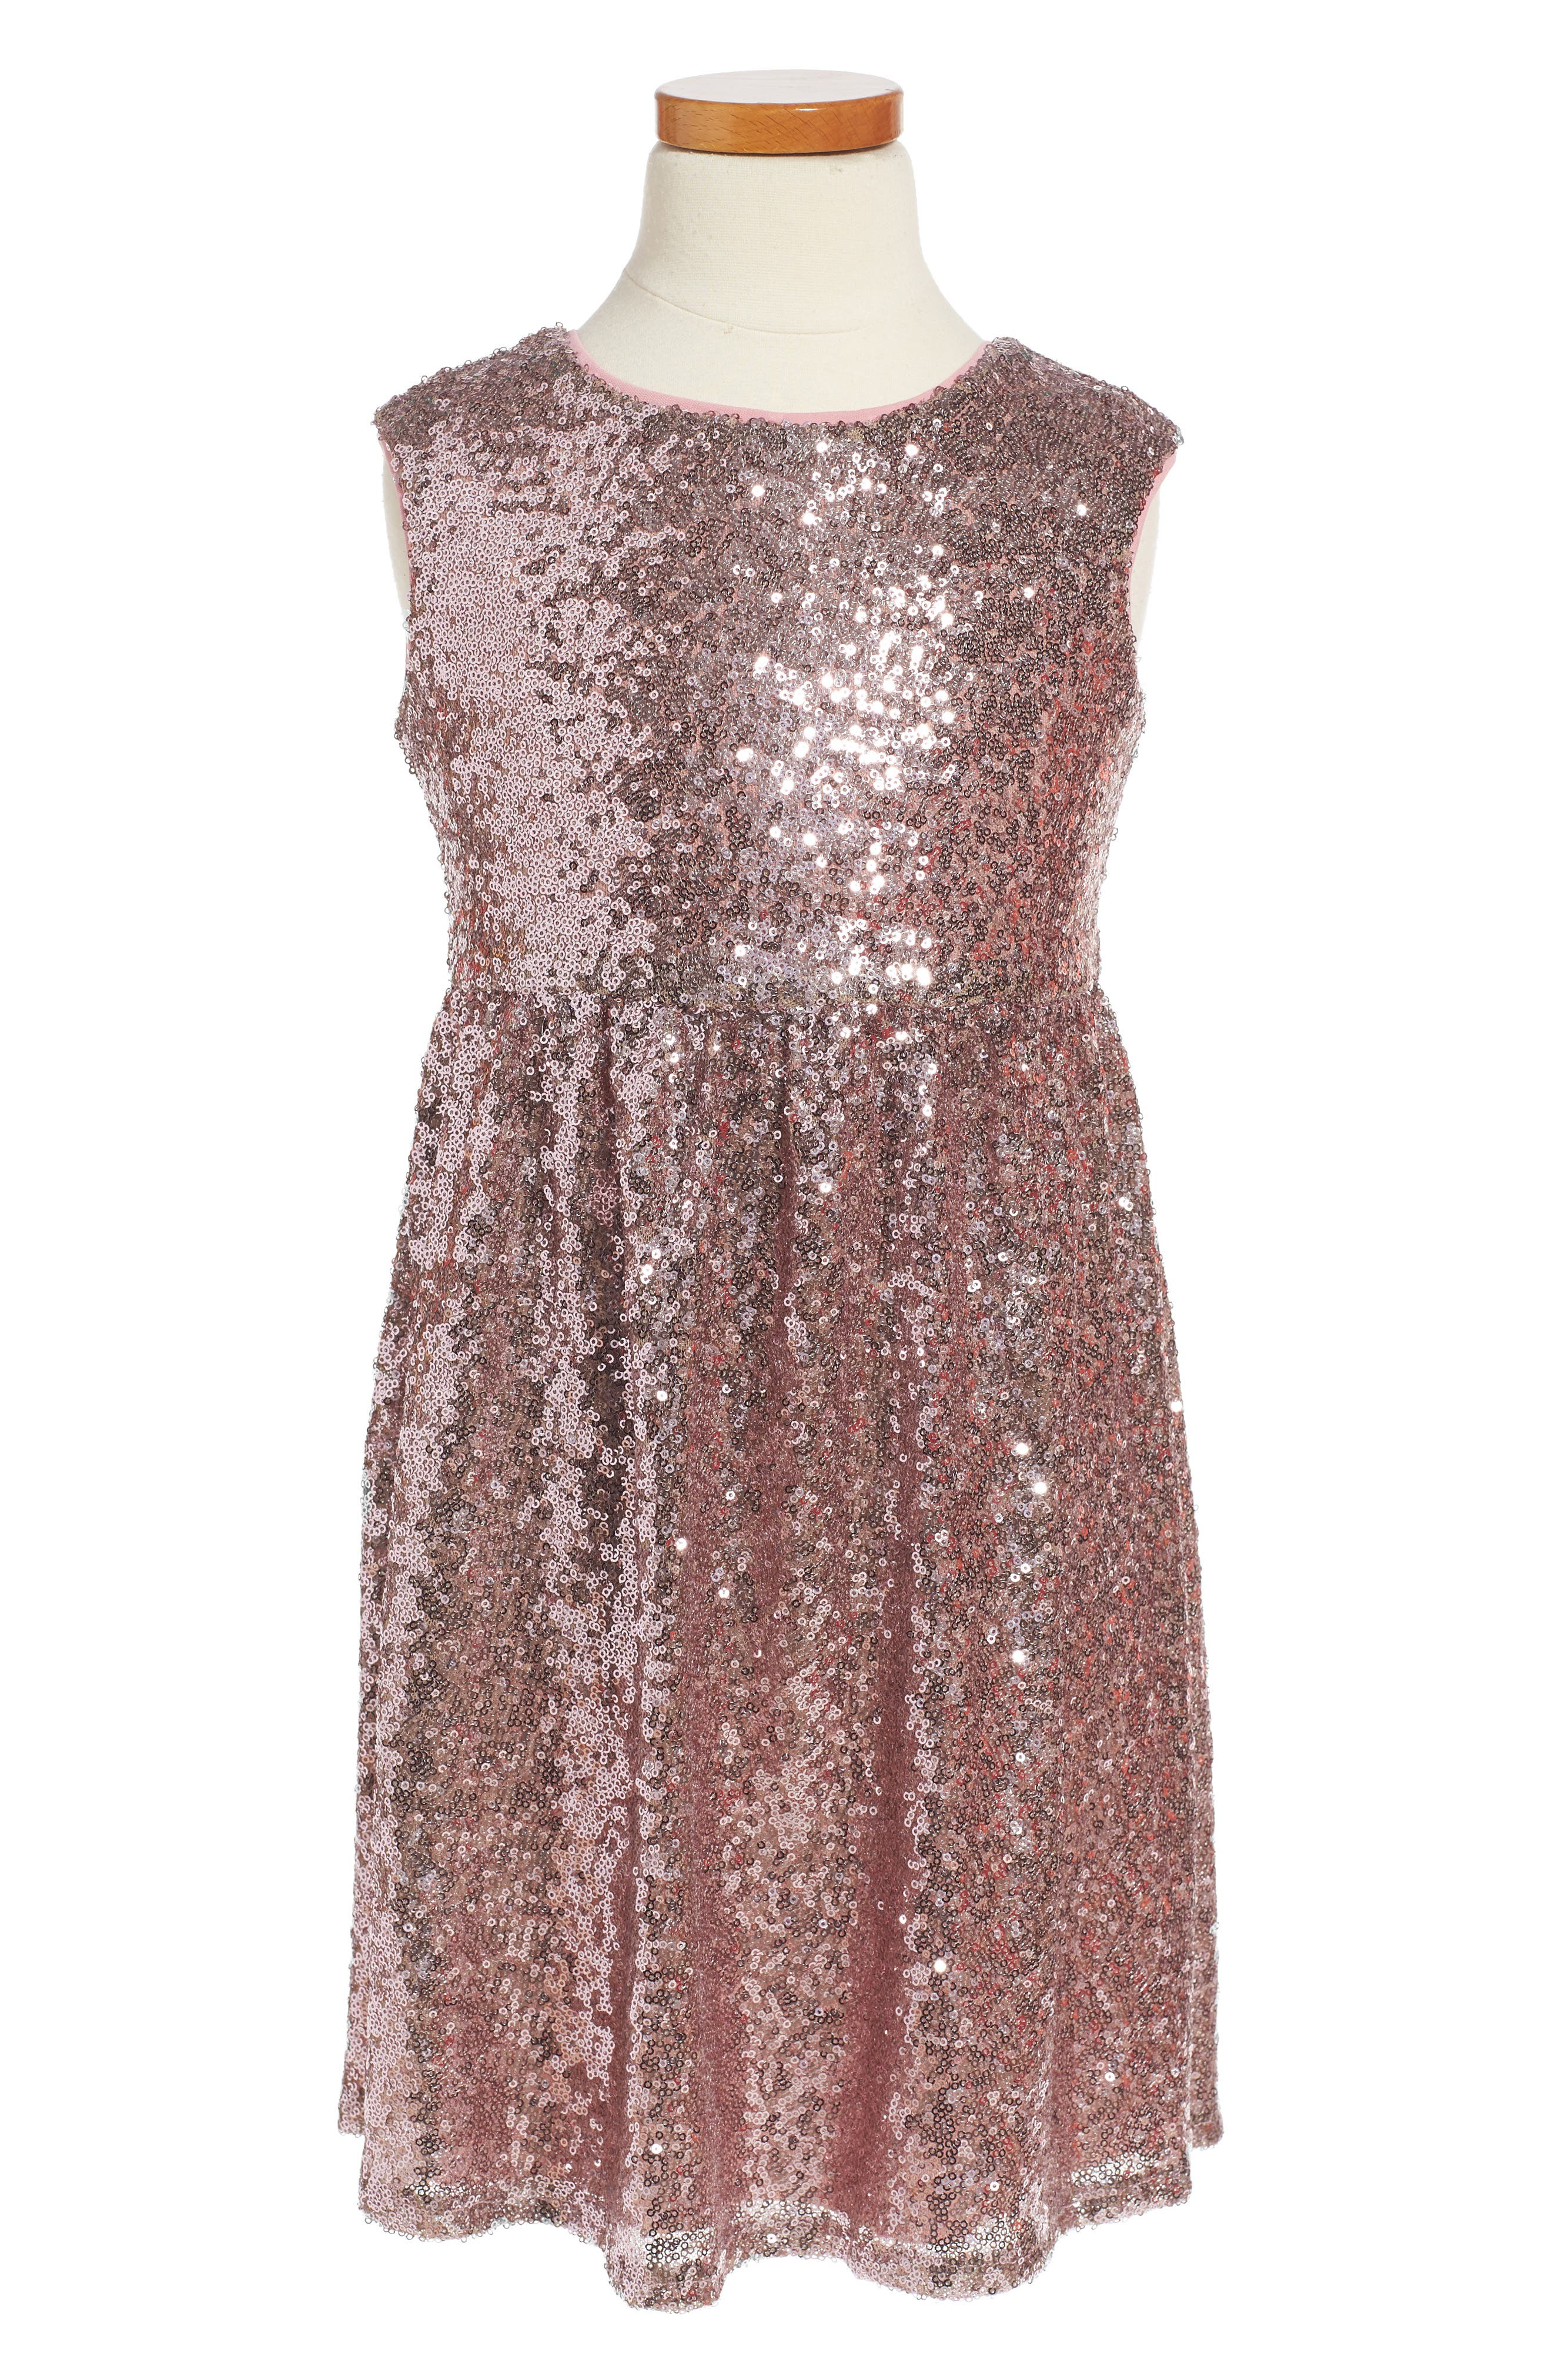 Love, Nickie Lew Sequin Dress (Toddler Girls & Little Girls)